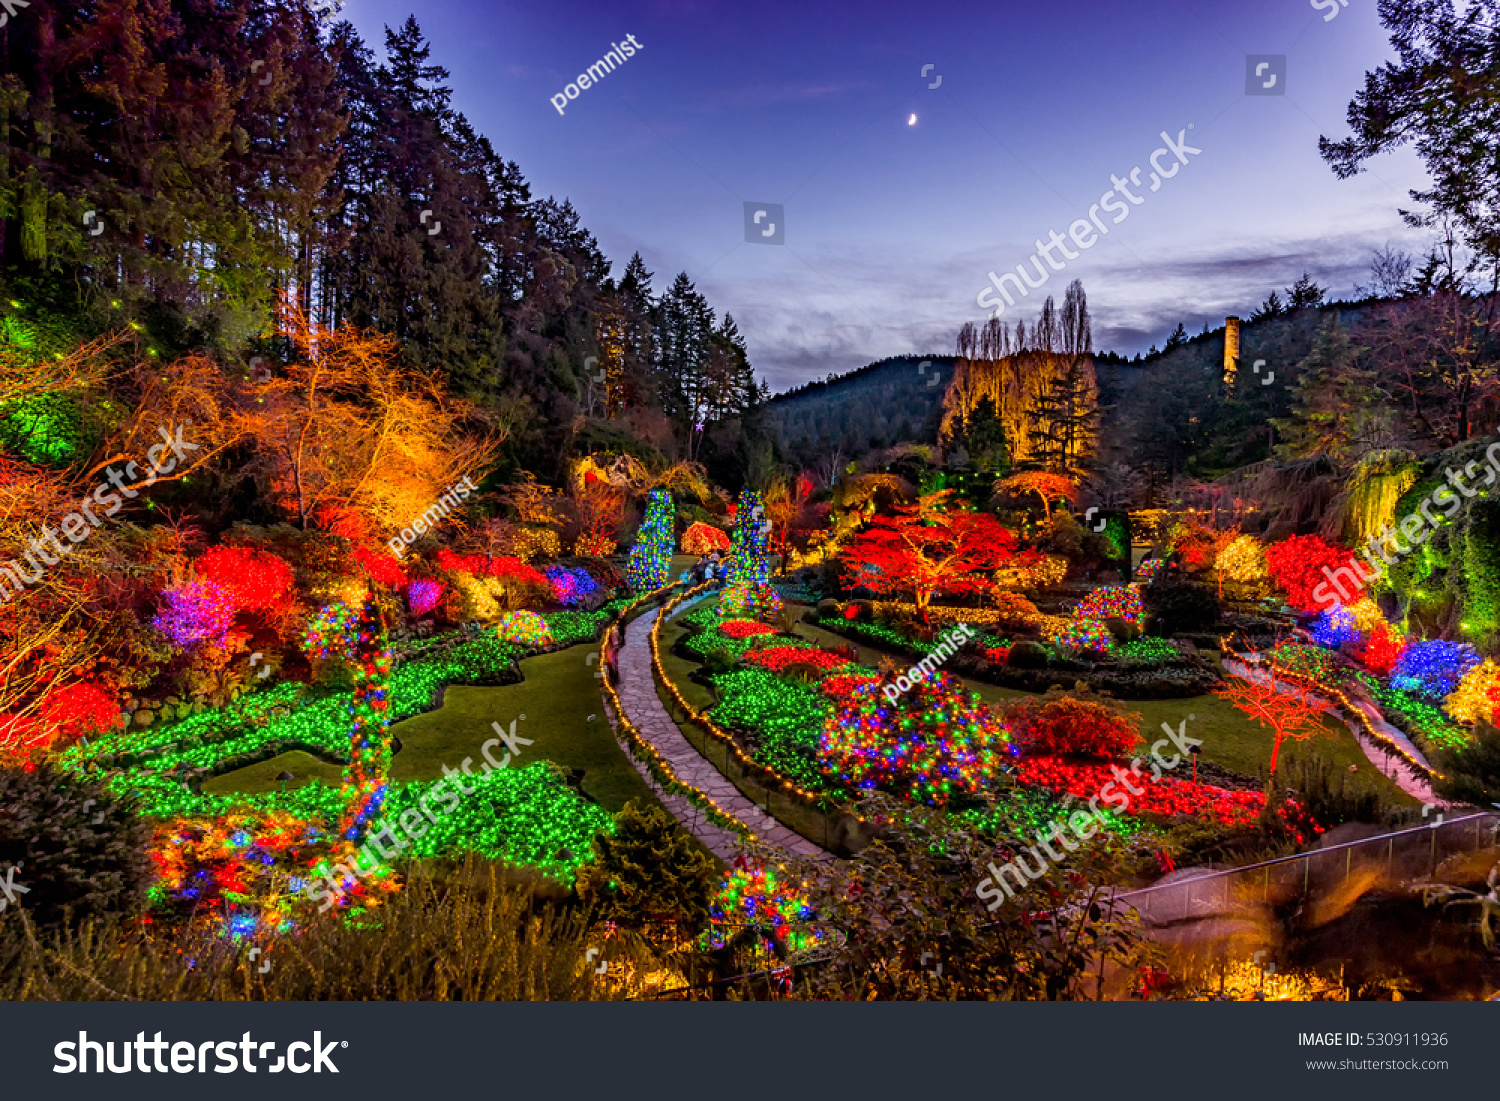 Christmas Wonderland Butchart Gardens Series Wonderful Stock Photo ...